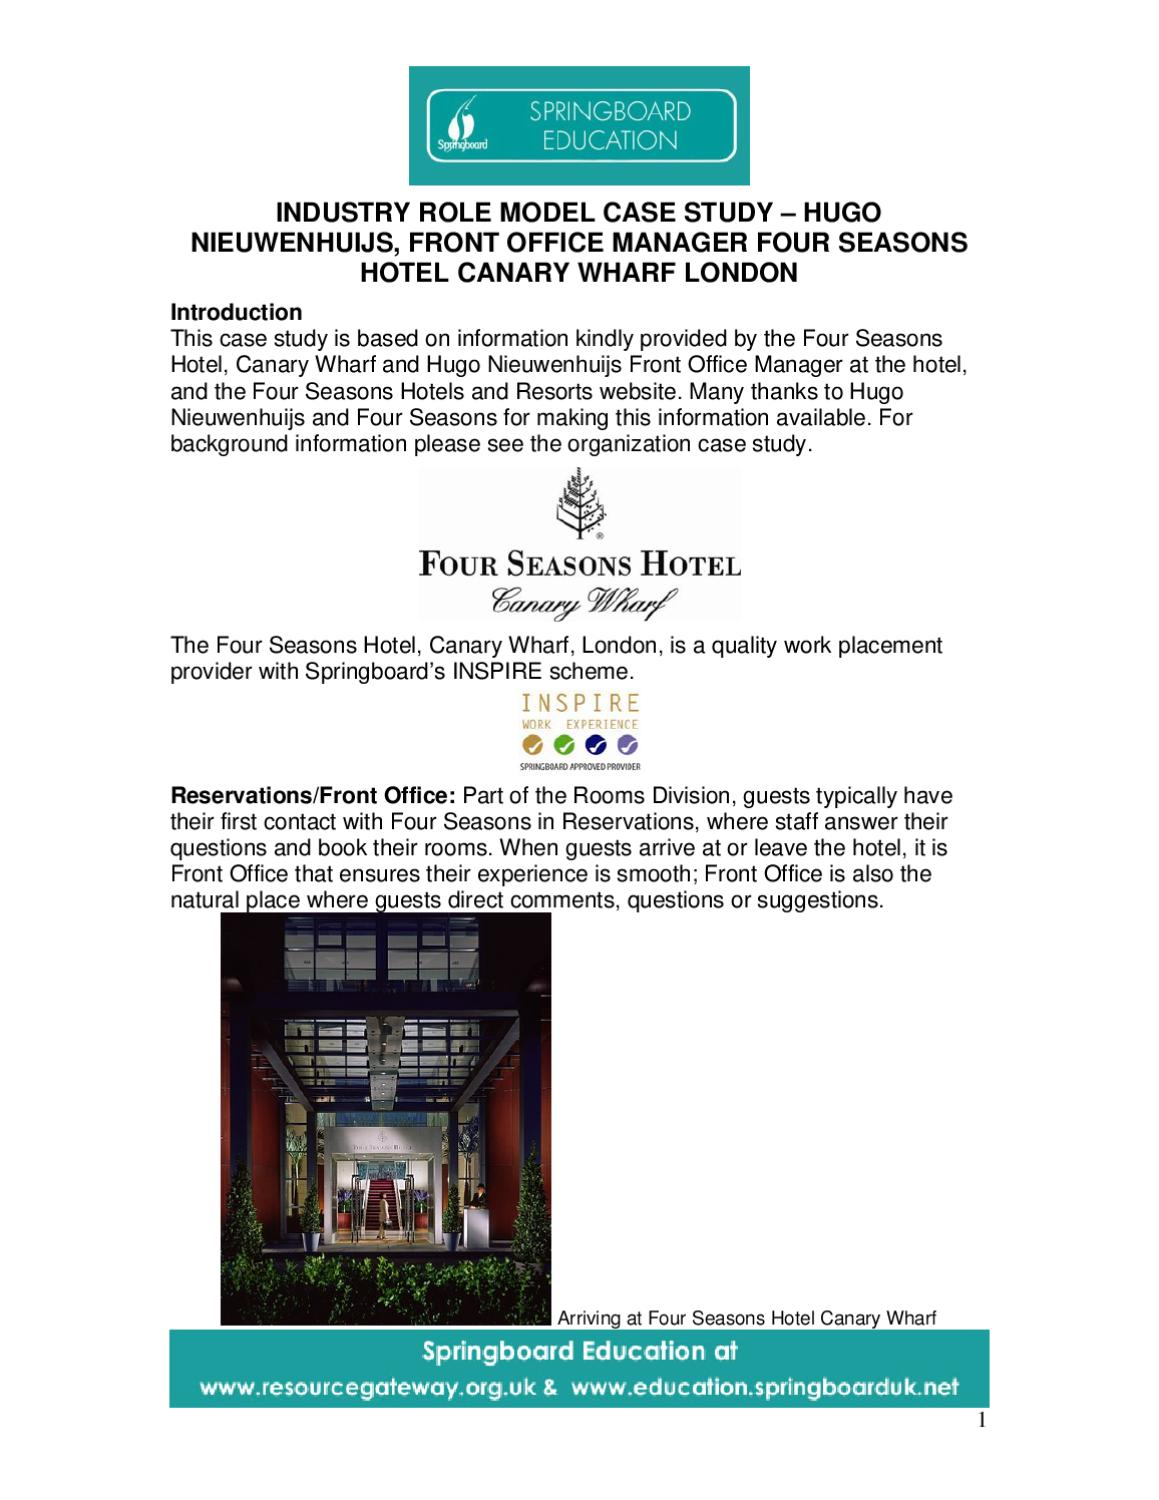 Four seasons role model case study 6 front office - What is the role of an office manager ...